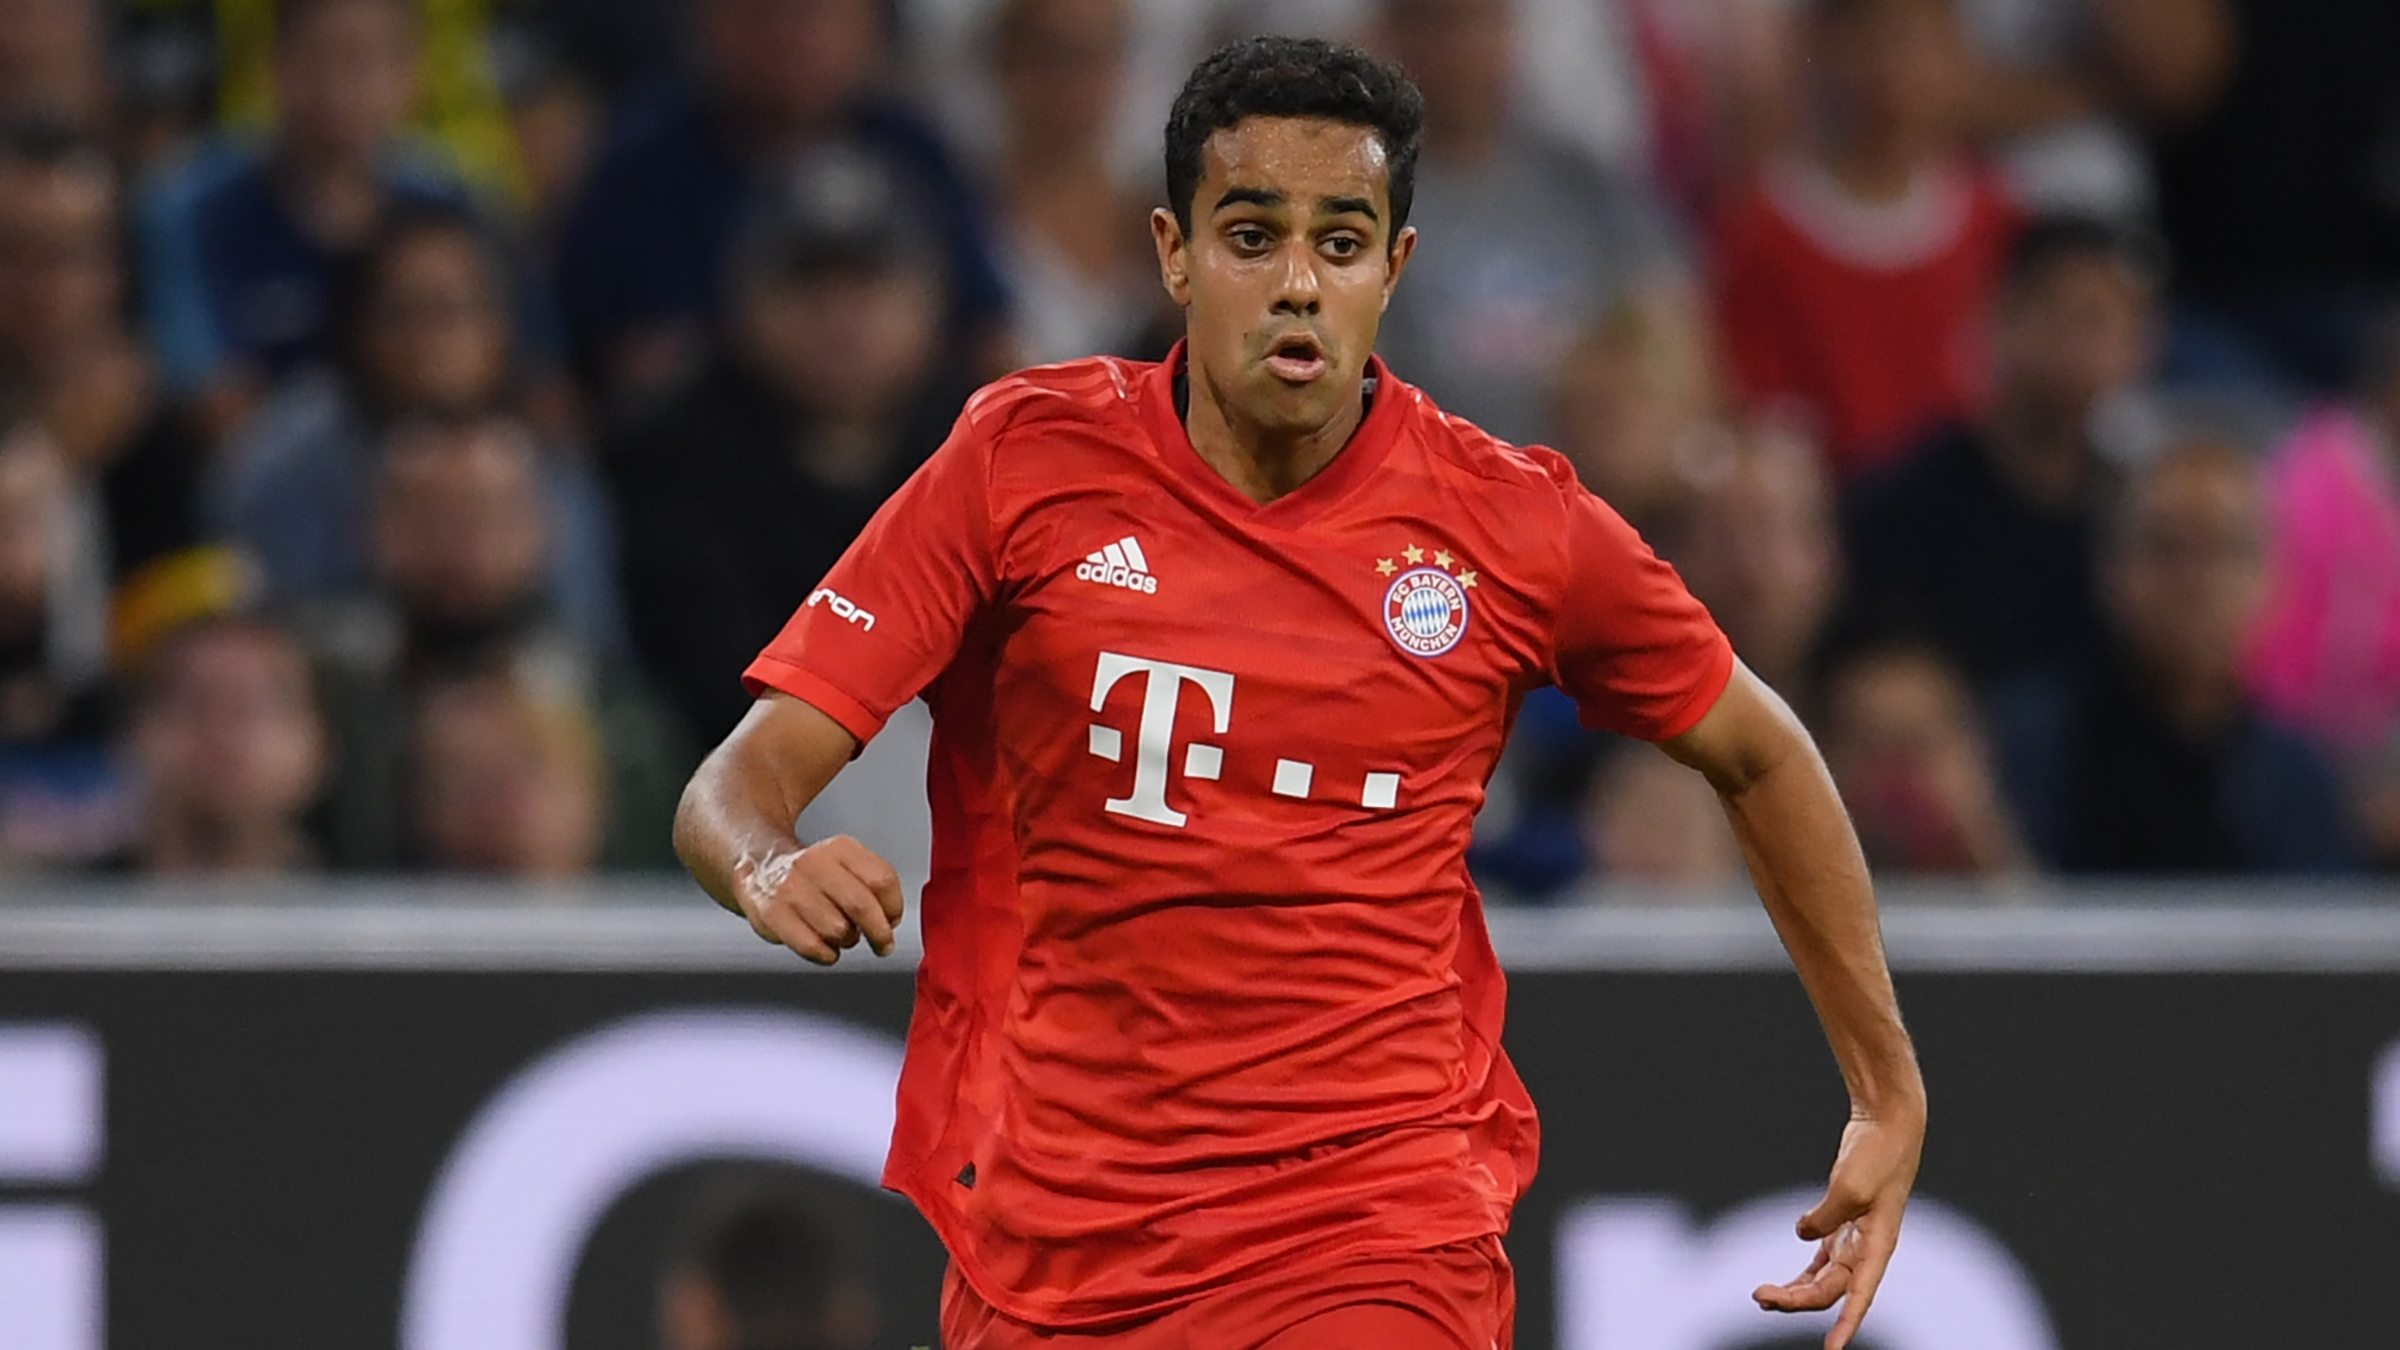 'I want to return to Bayern a better player' - Singh determined to make his mark at German giants